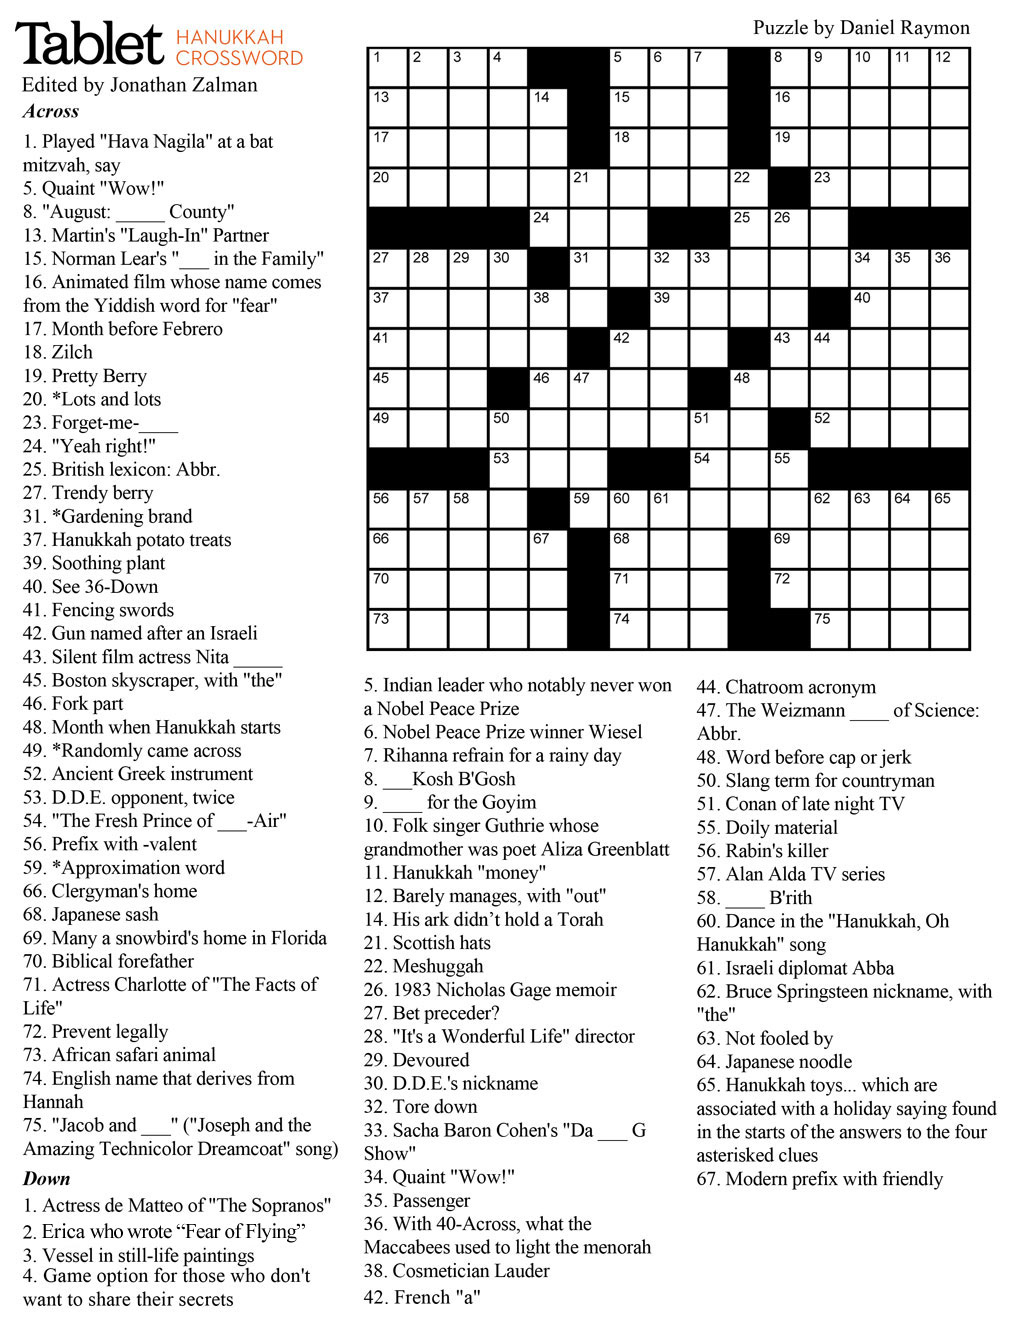 Wind Down With Our Hanukkah Crossword Puzzle! – Tablet Magazine - Printable Crossword With Solutions